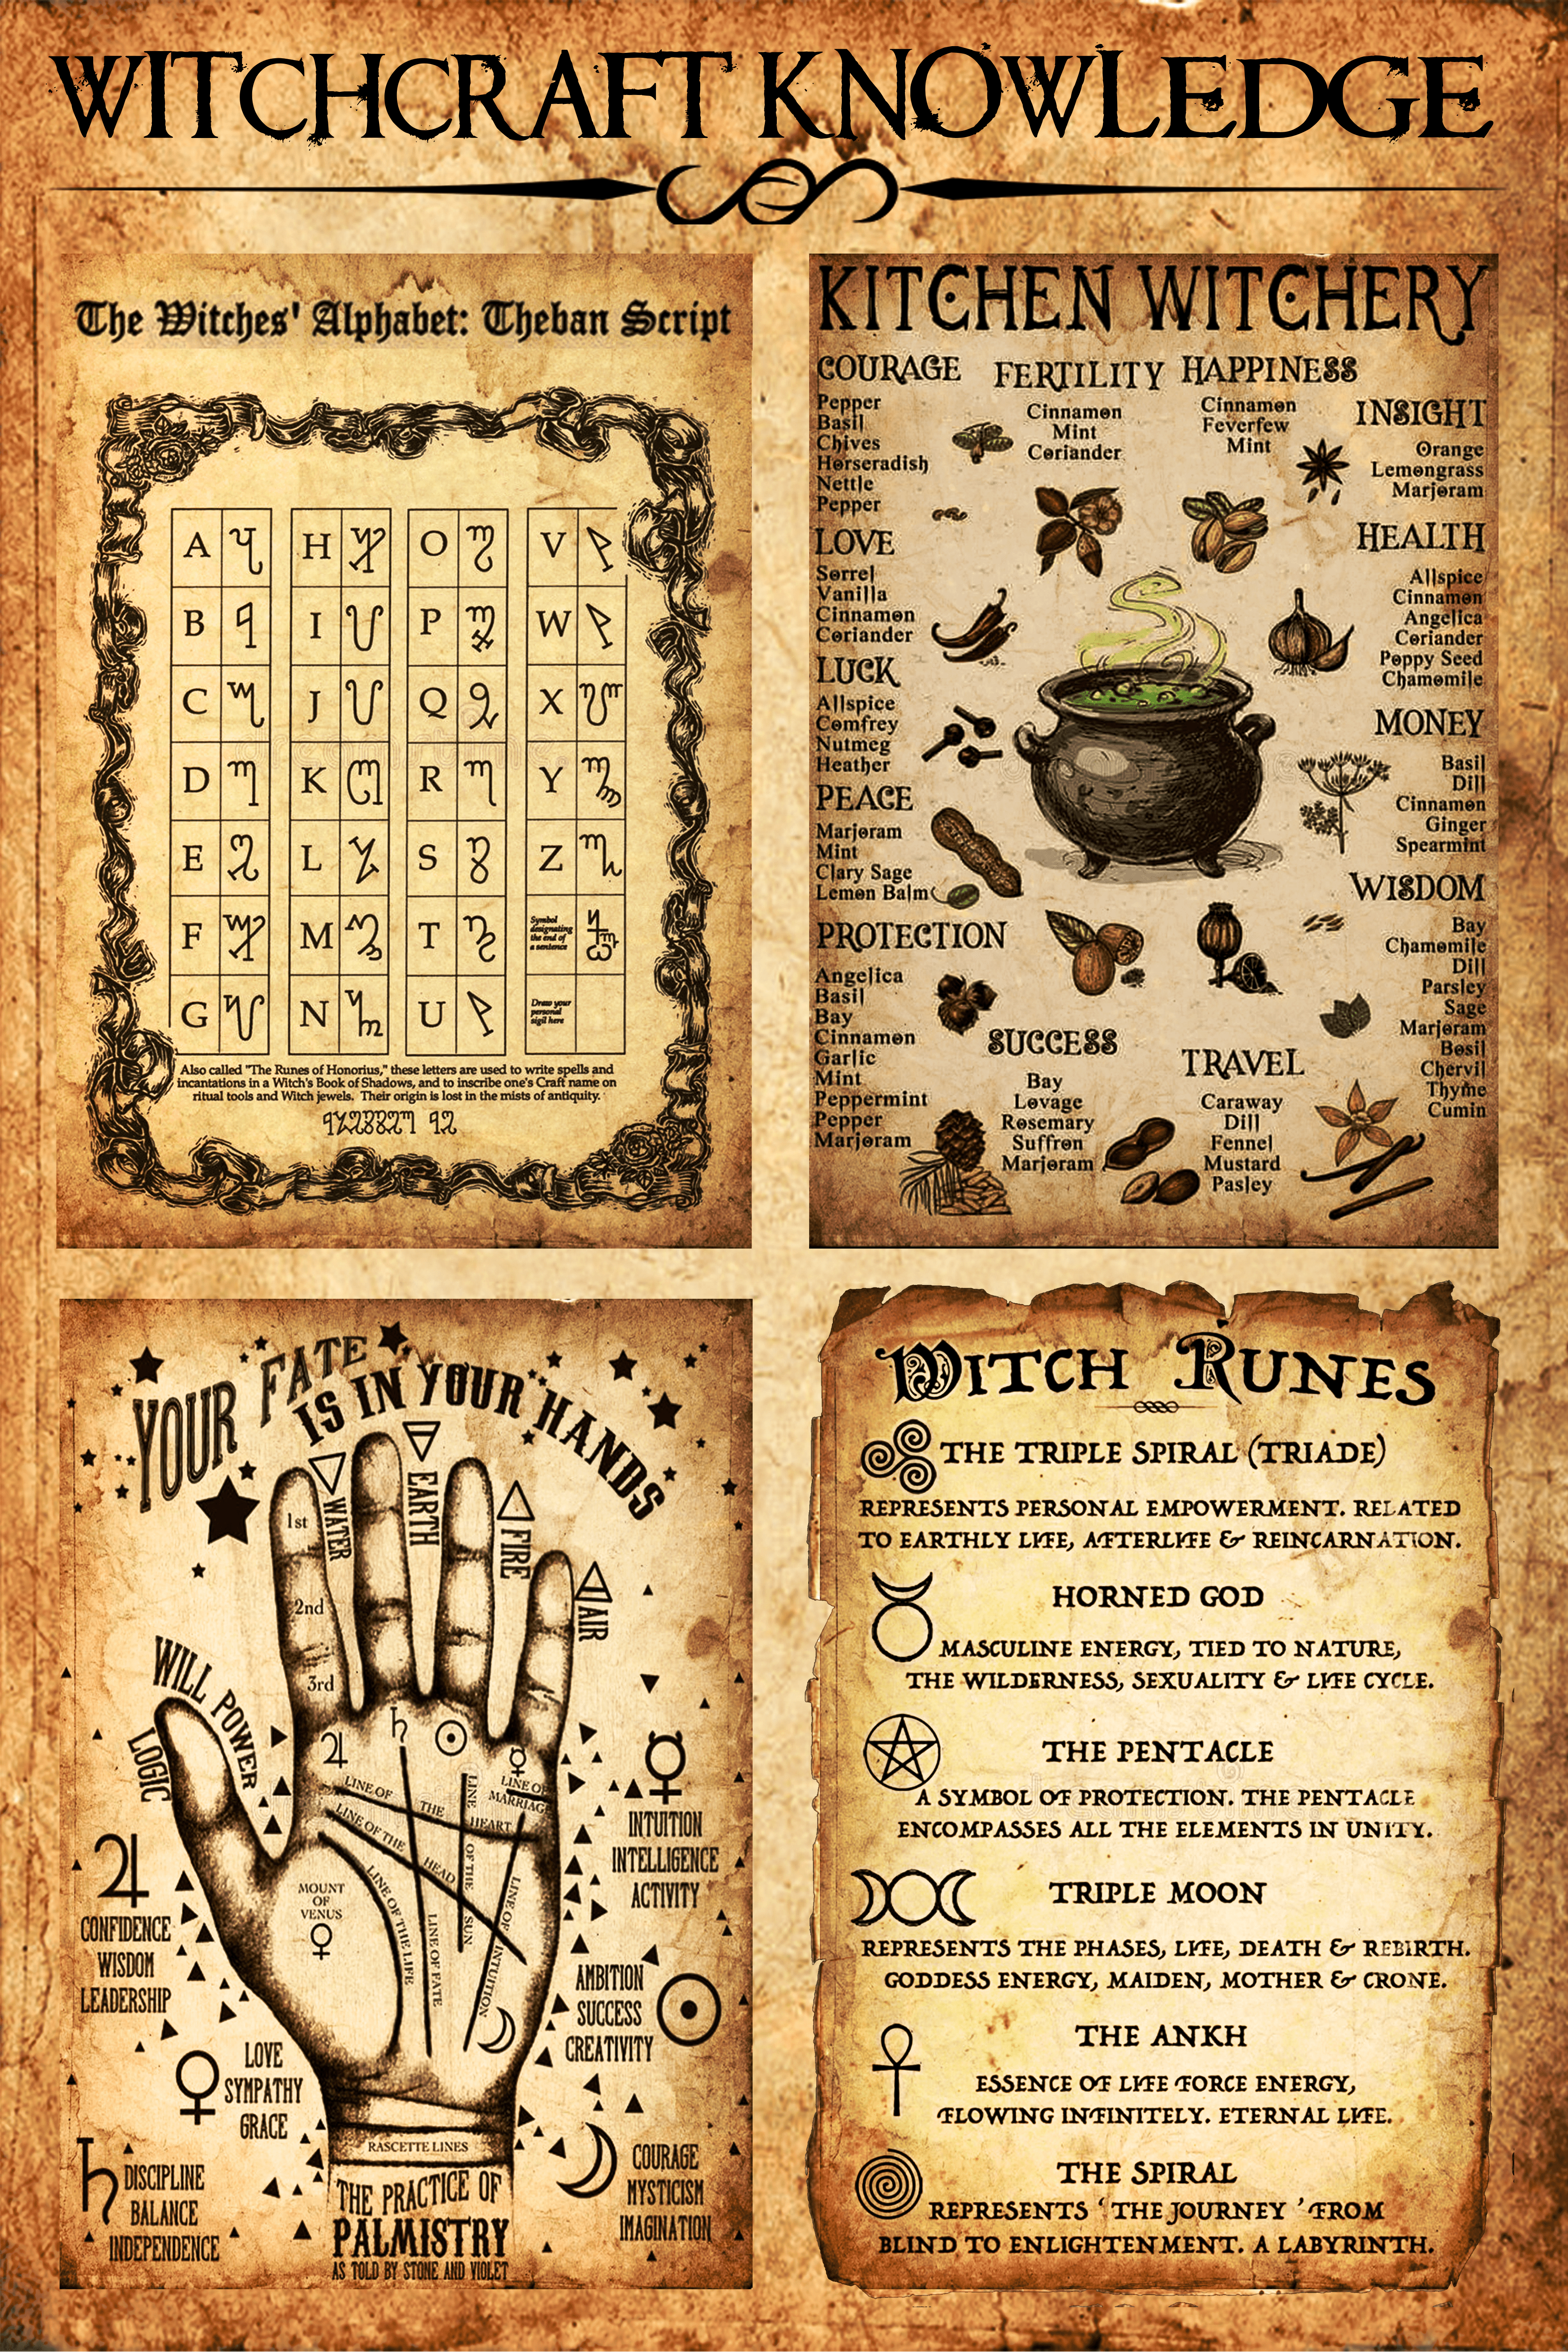 Witchcraft Knowledge - Kitchen Witchery - Fate in Hand - Witch Runes - All About Wicca